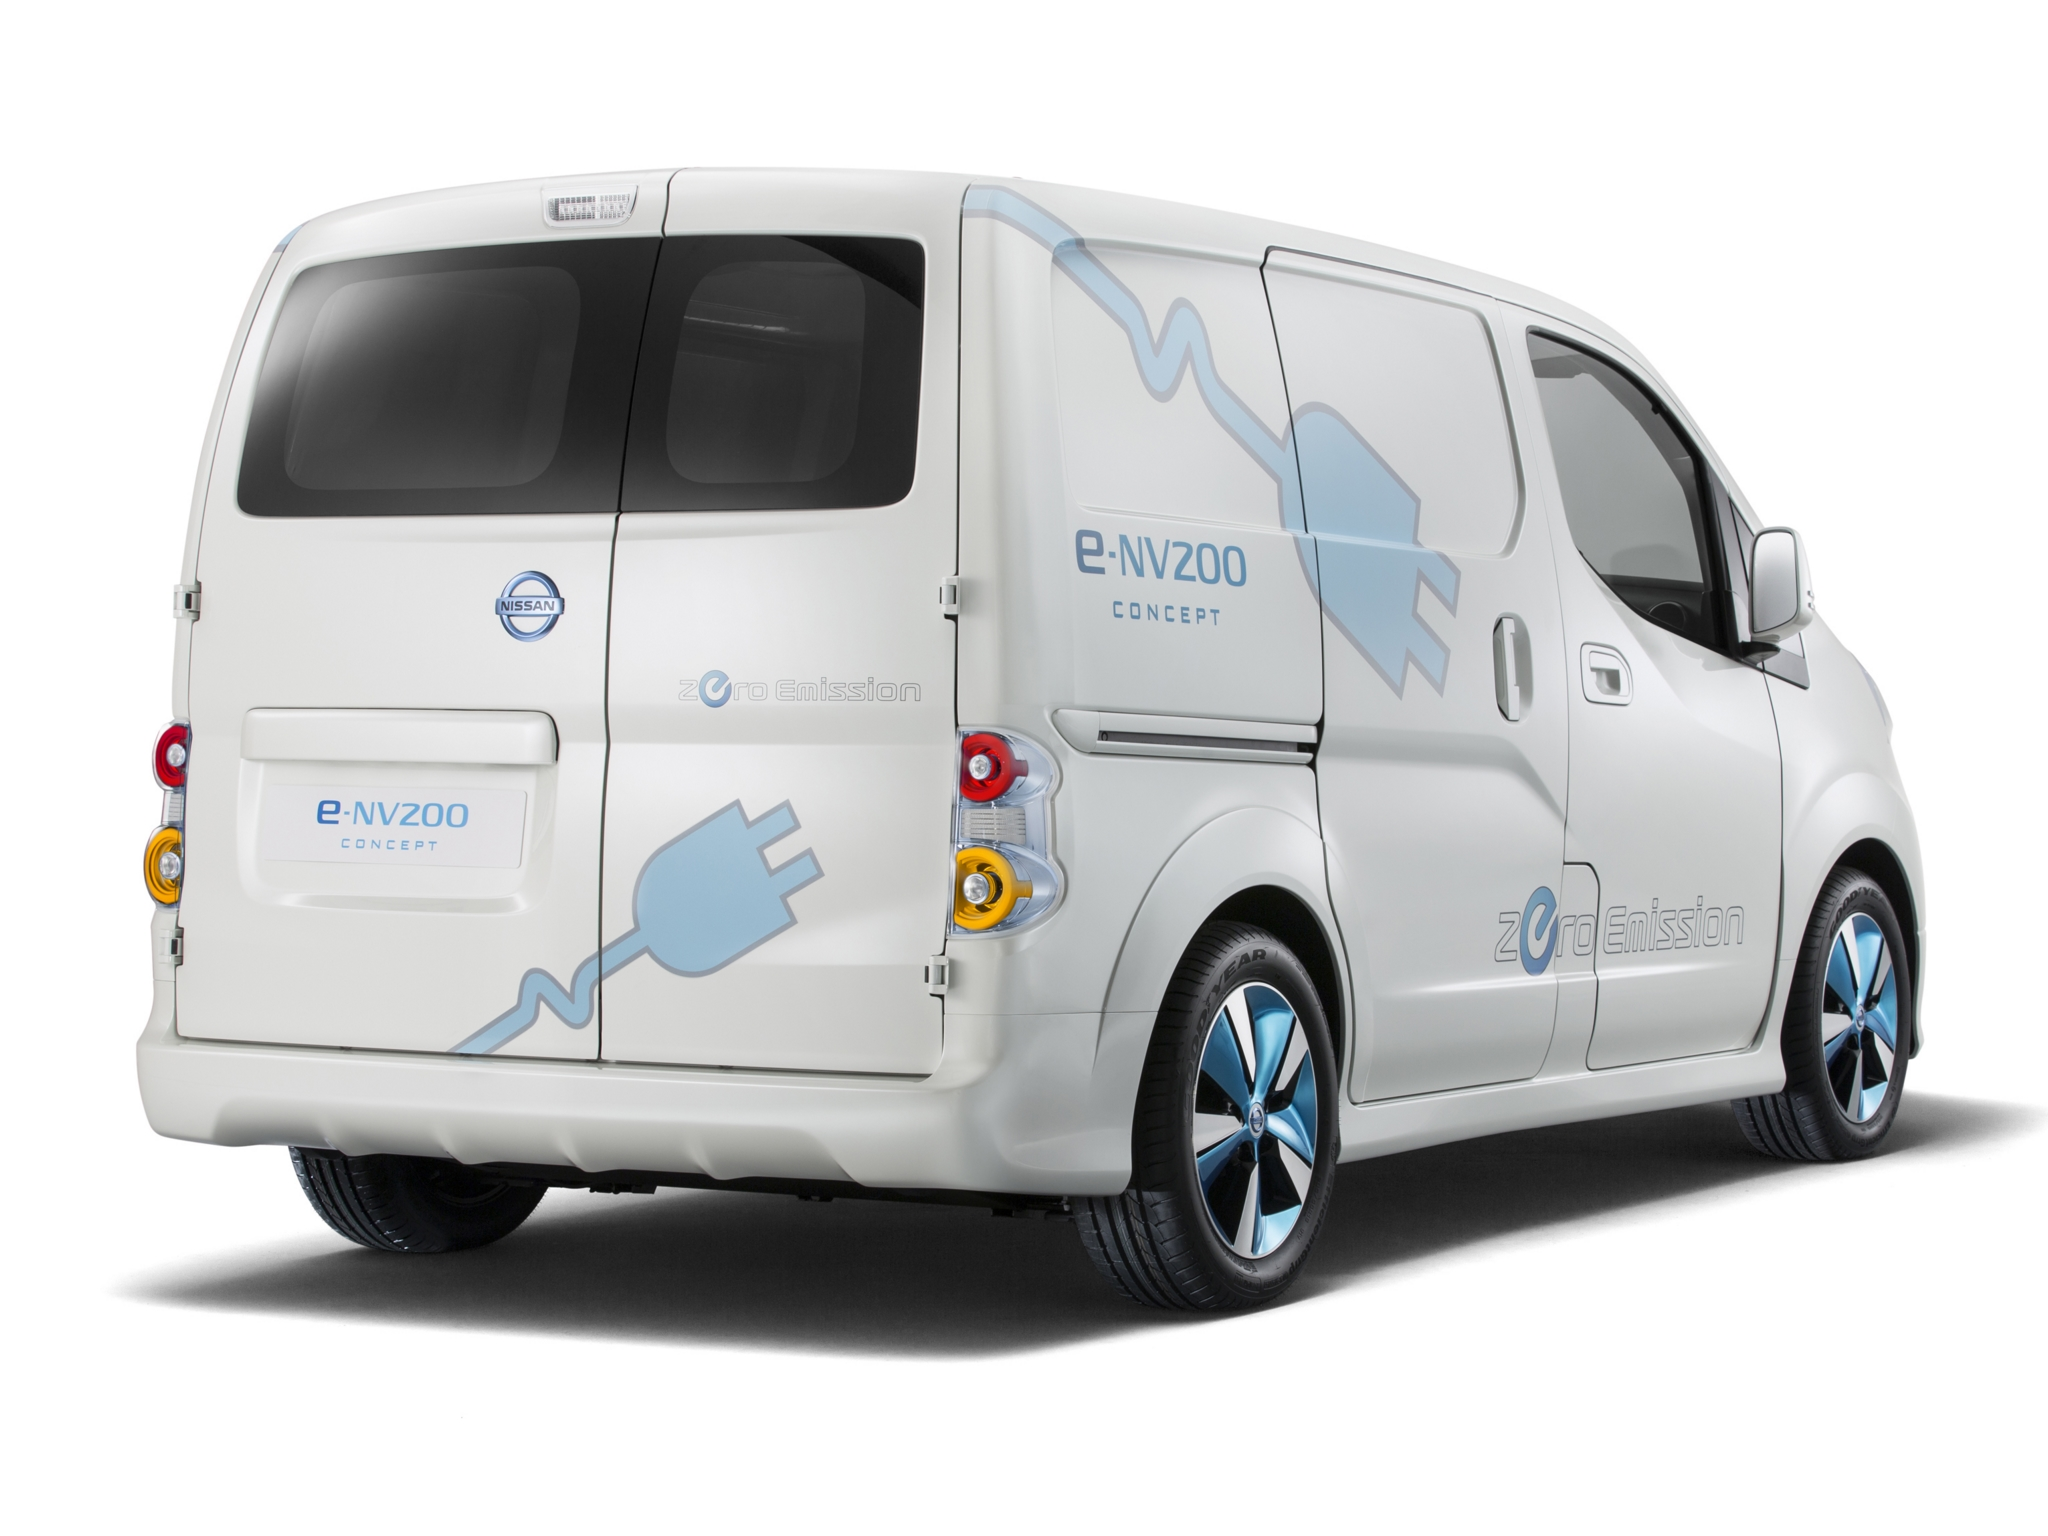 2019 Nissan e NV200 Concept photo - 4